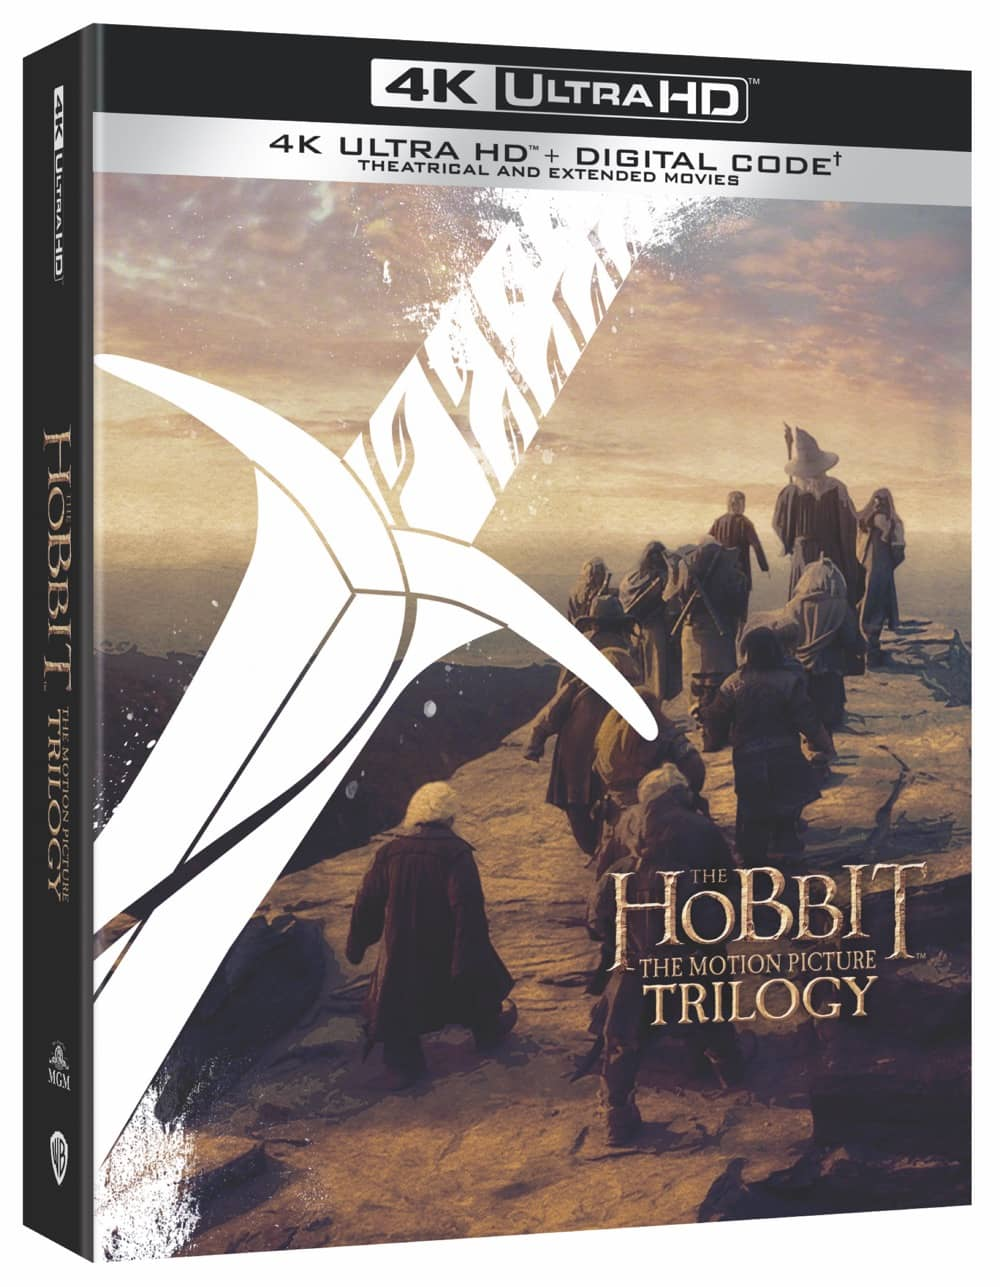 HOBBIT TRILOGY 1000756530 4K SC 3D FINAL WW SKEW1